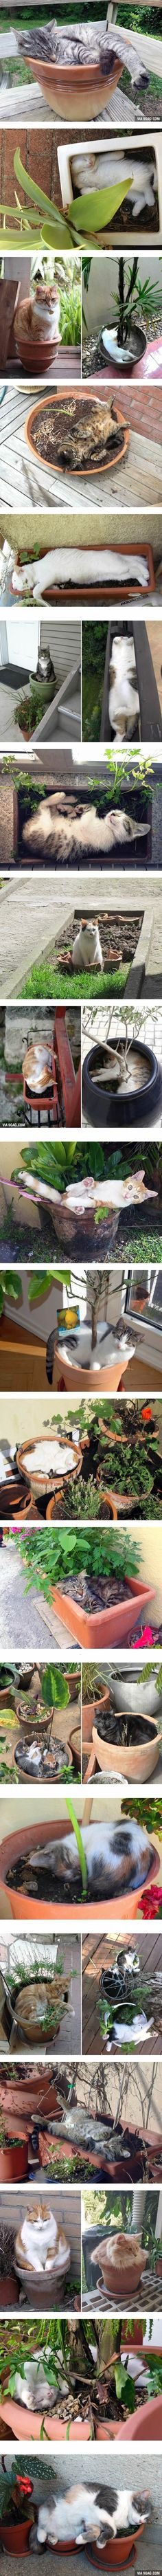 These are the plants that you probably shouldn't water. Or more proofs that cats are liquid.